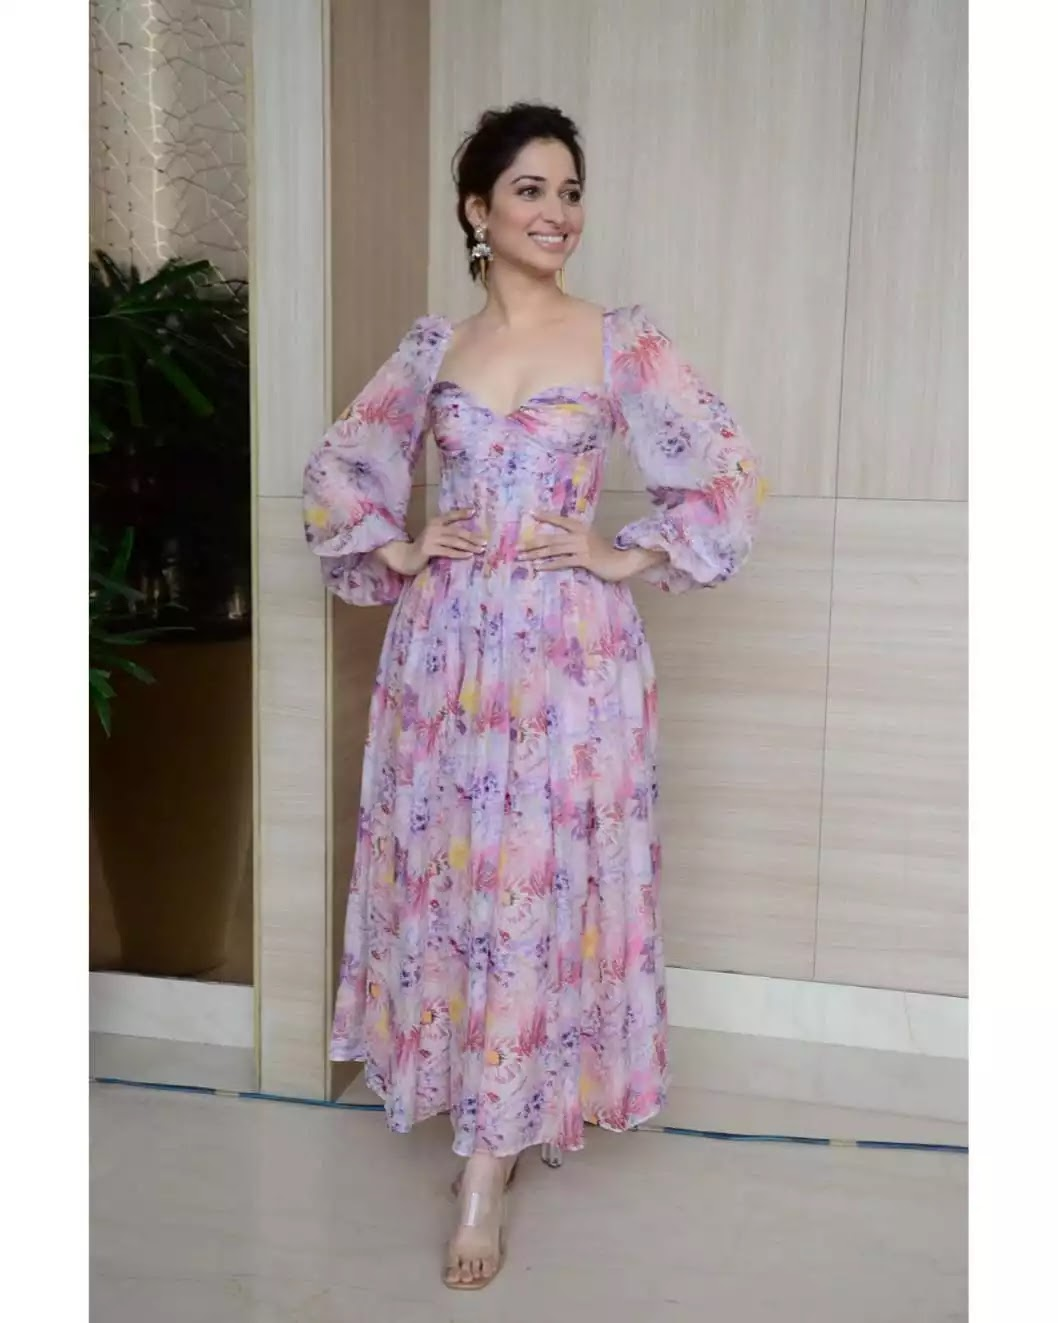 tamannaah-bhatia-hot-looks-in-pink-outfit